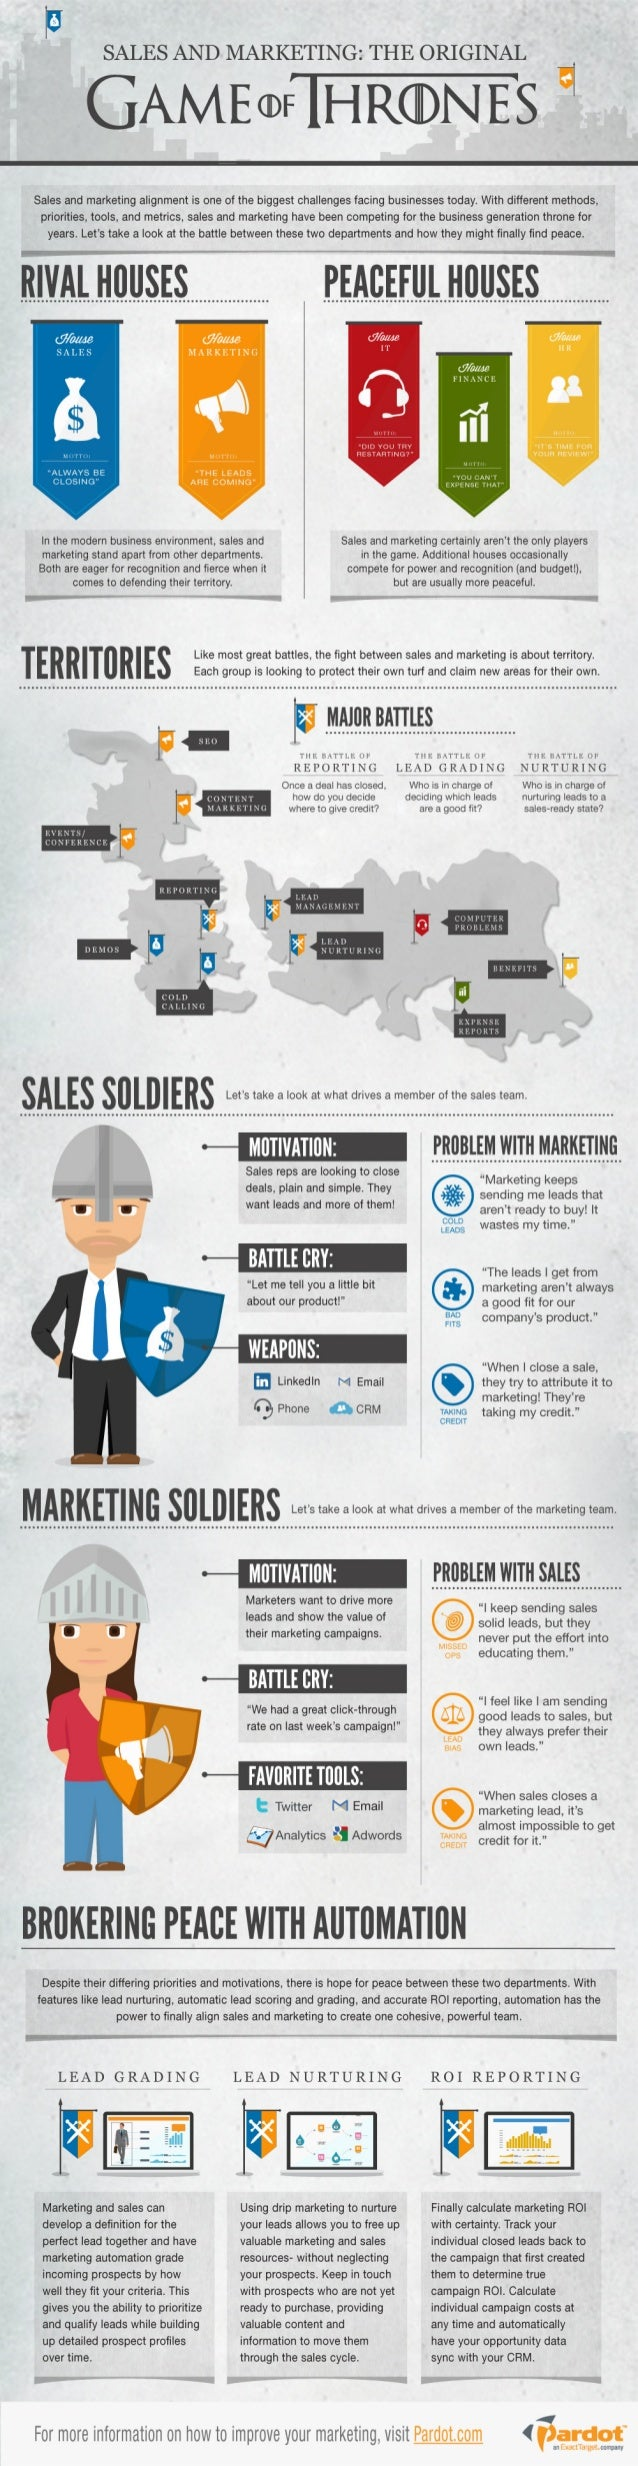 Sales and Marketing: The Original Game of Thrones [Infographic]